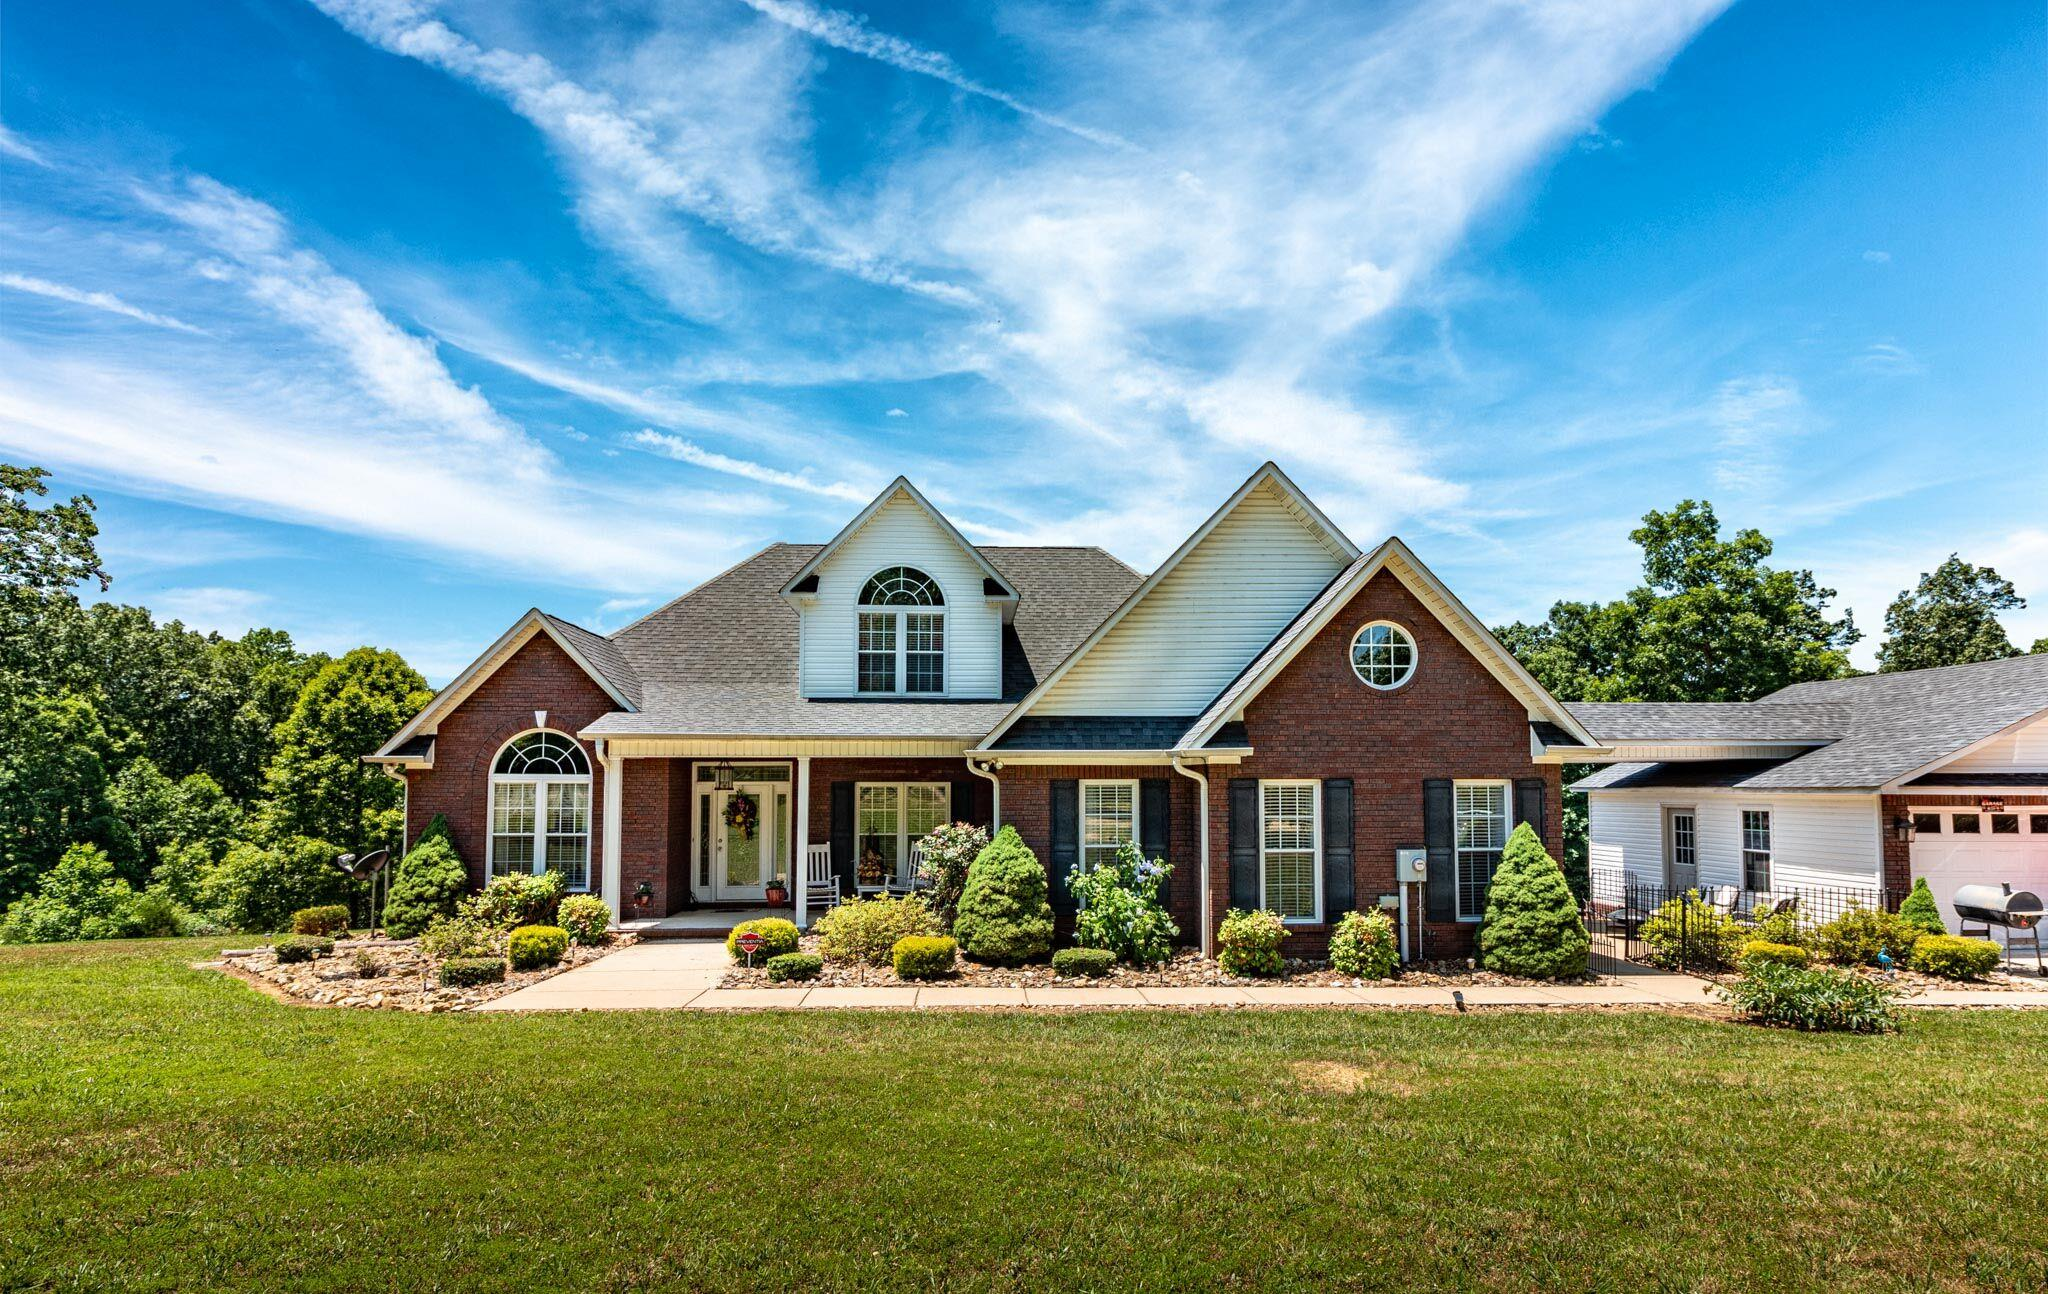 242 James Zimmerman Rd, Hampshire, TN 38461 - Hampshire, TN real estate listing